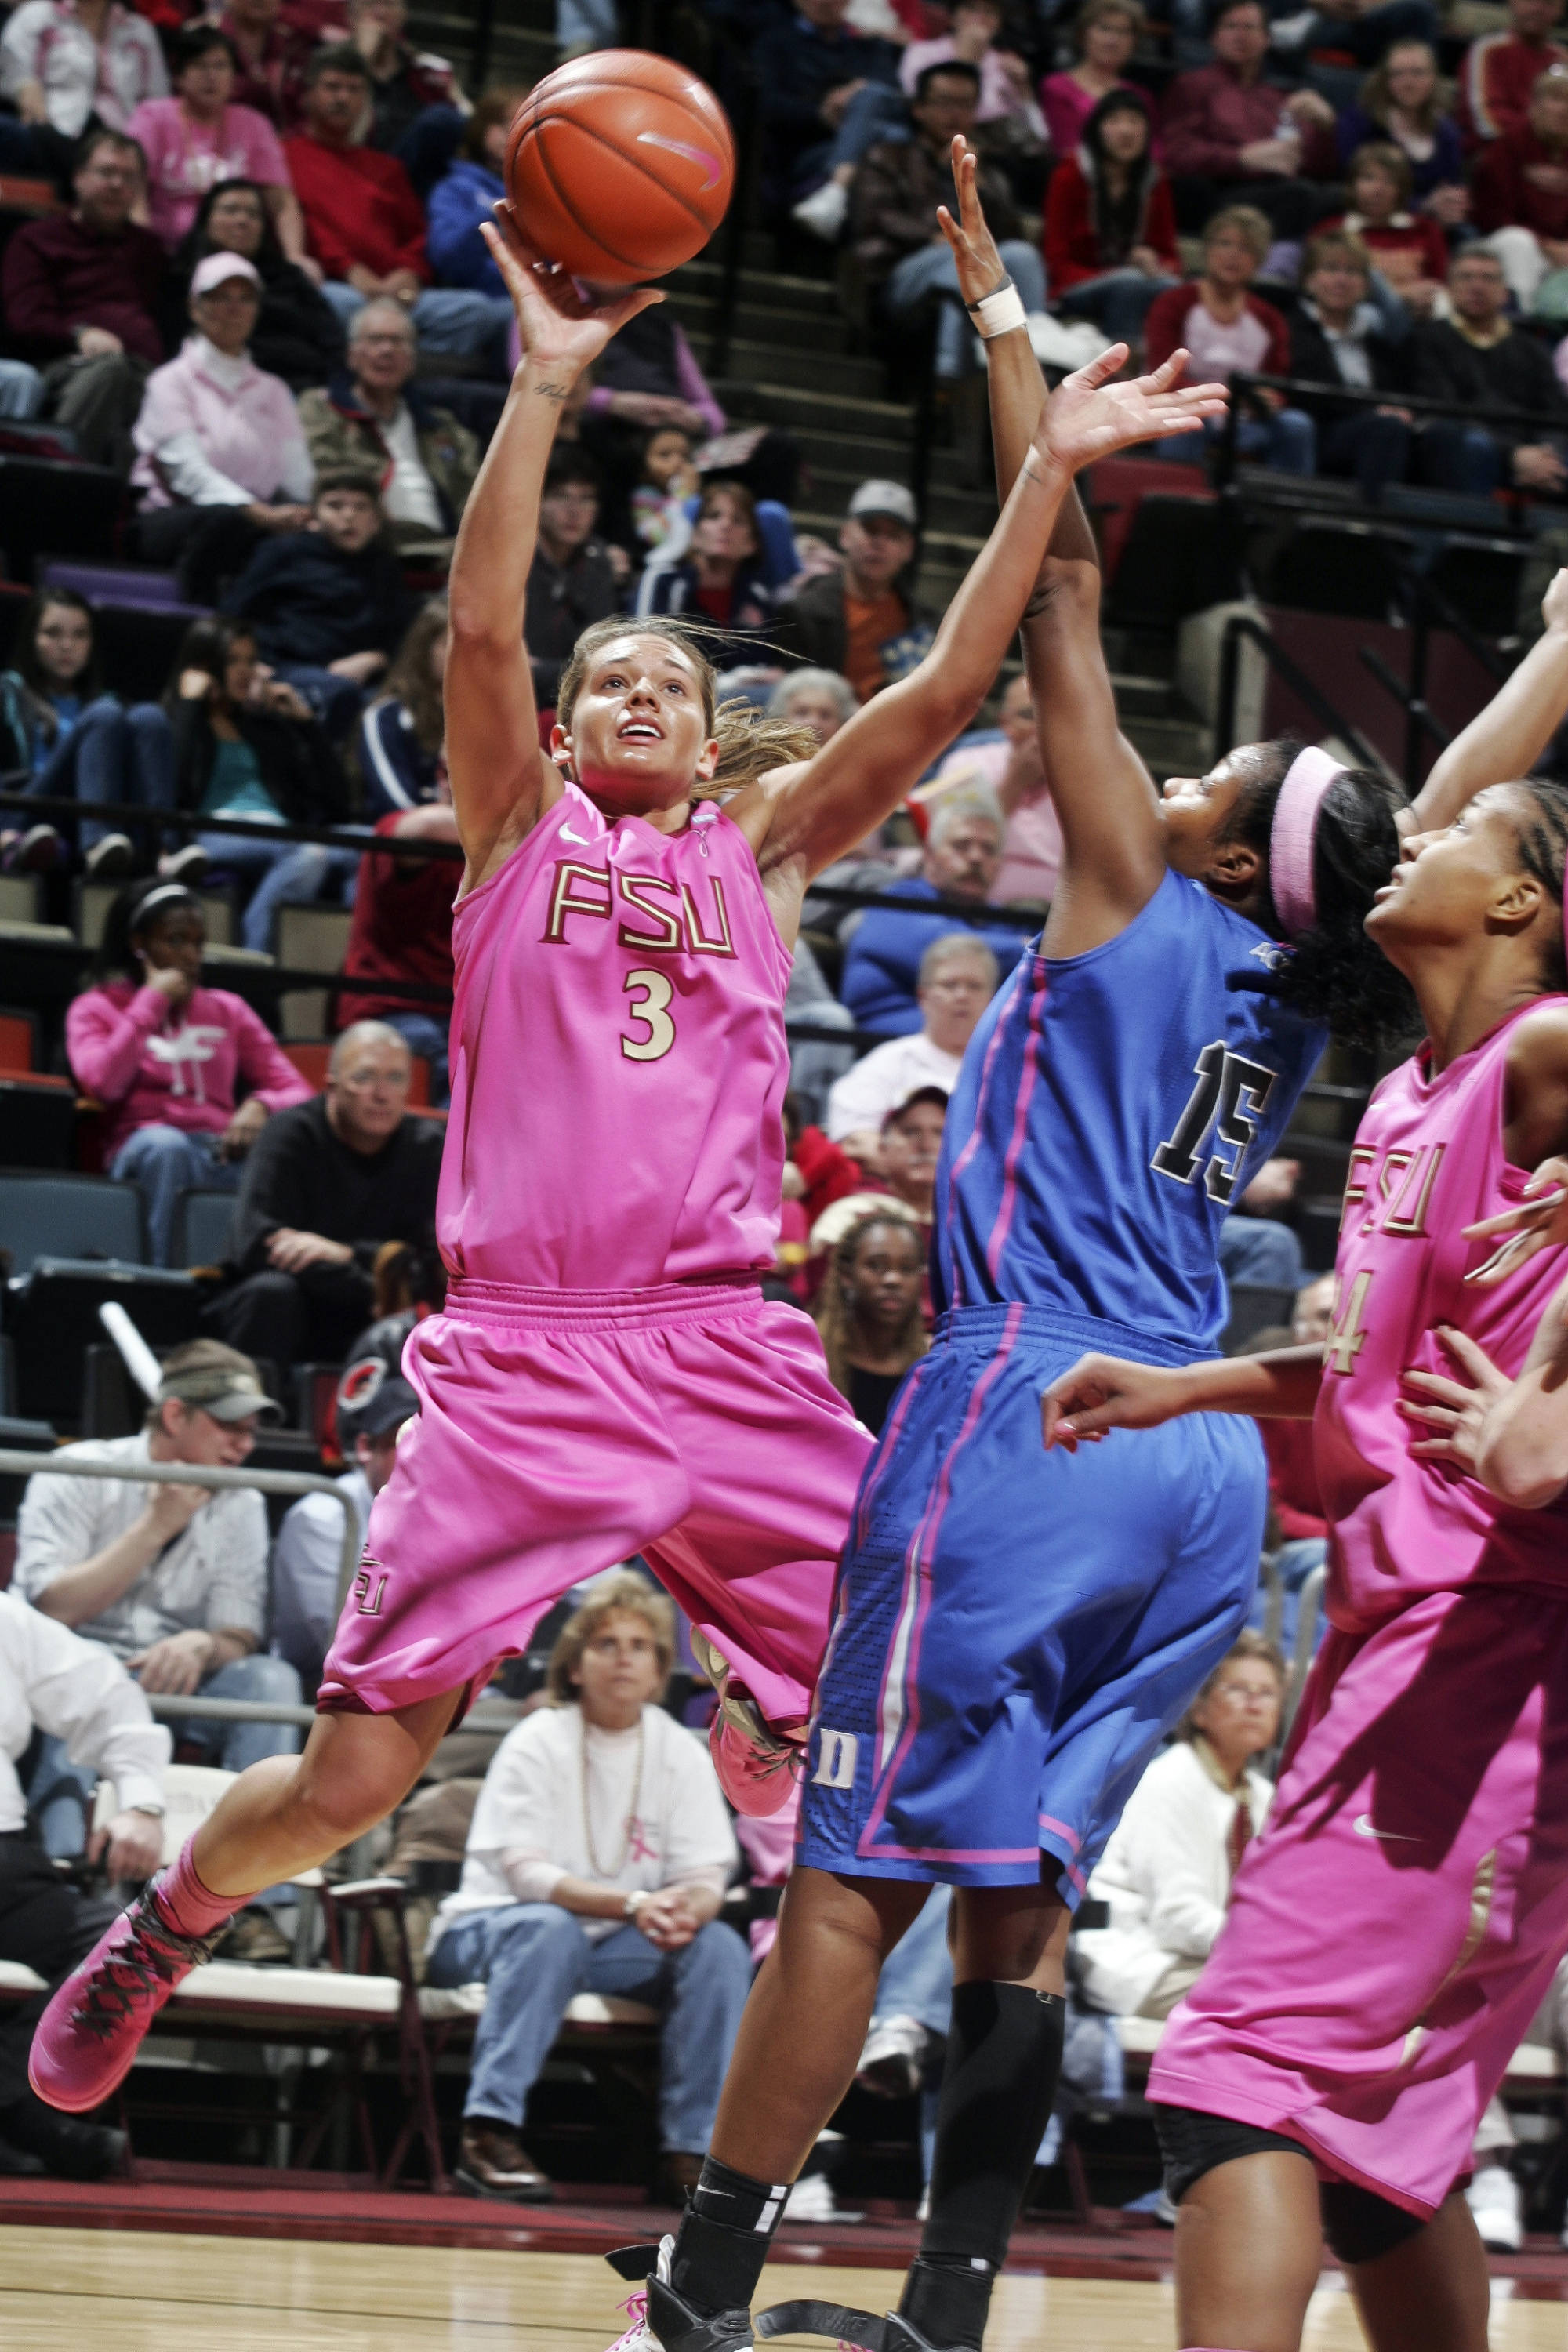 Florida State's Alexa Deluzio (3) shoots over Duke's Richa Jackson (15). (AP Photo/Phil Sears)